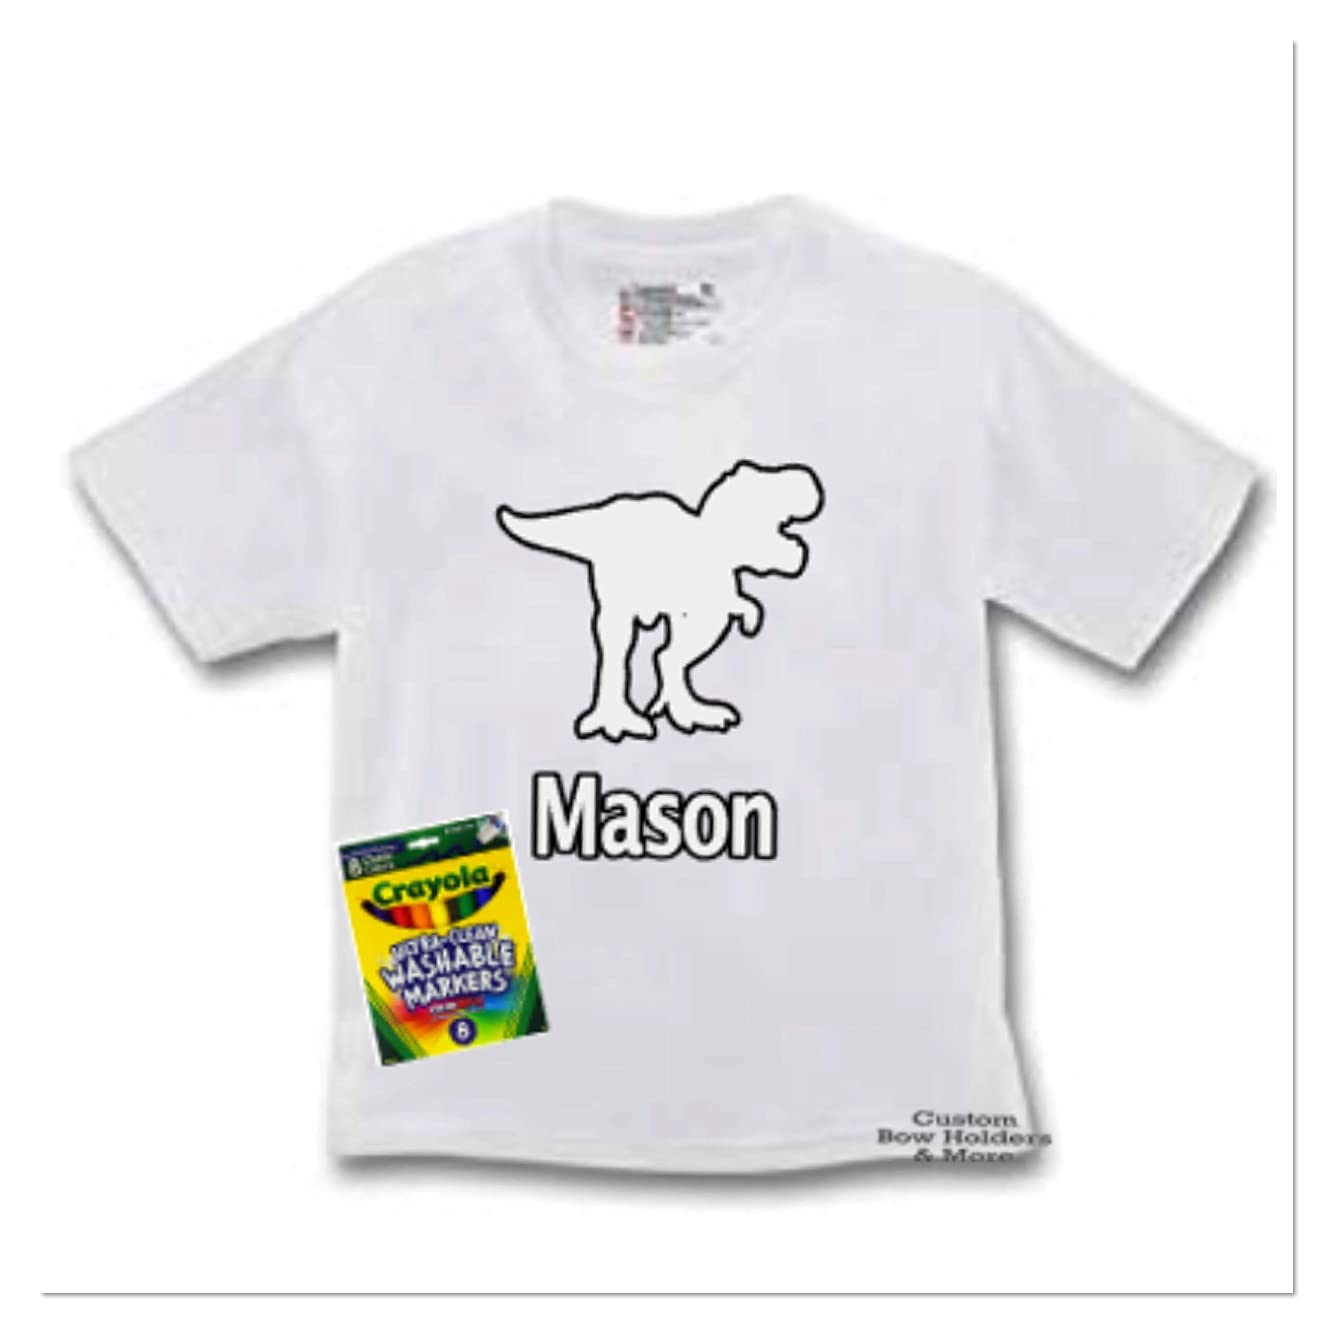 Coloring Tee Shirt, Personalized Dinosaur Color Me Tee Shirt, Washable Marker Tee, Toddler To Preteen Sizes Available - Washable Markers Included Free, Birthday Party Favors, Any Name